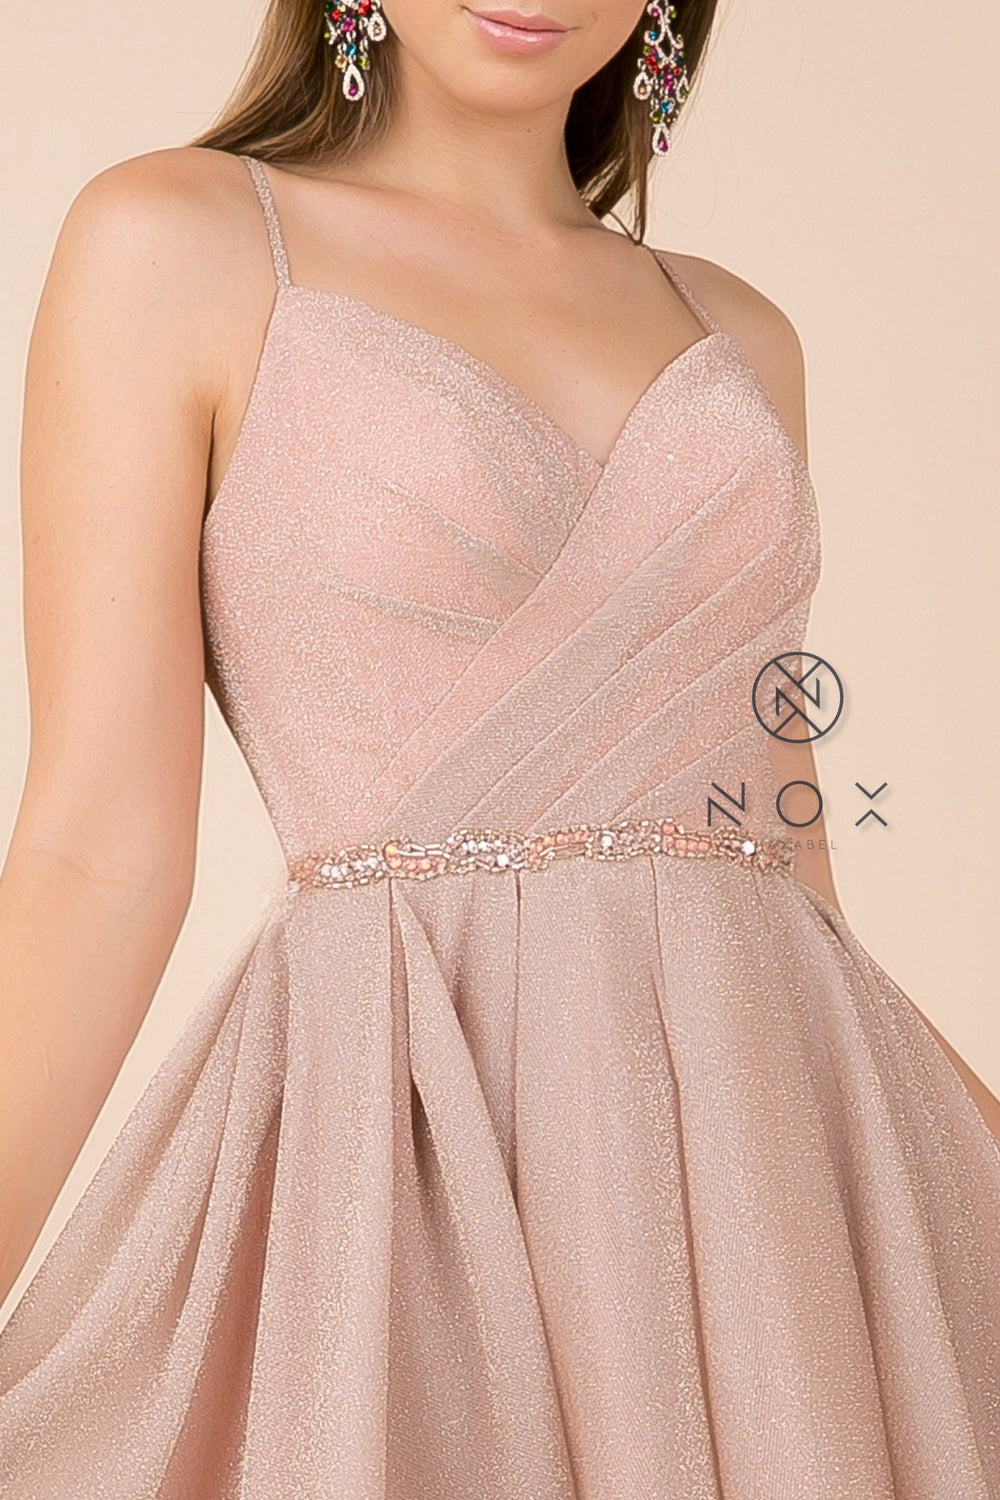 EMBELLISHED-V-NECK-PLEATED-A-LINE-DRESS-SHORT-DRESS-T681-BY-NARIANNA